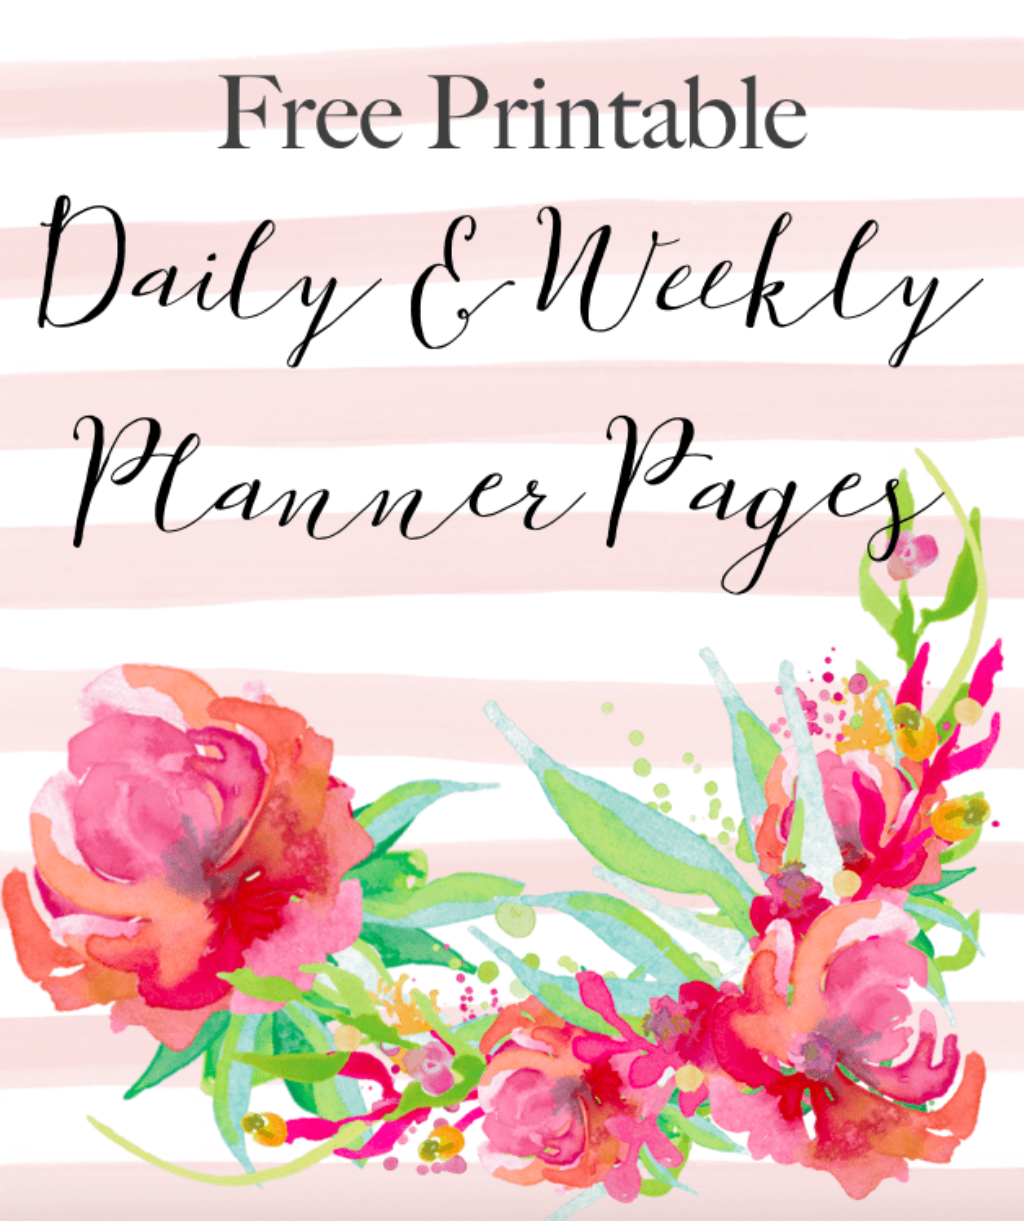 photograph about Floral Printable named 4 Cost-free Printable Floral Day-to-day Weekly Planner Webpages